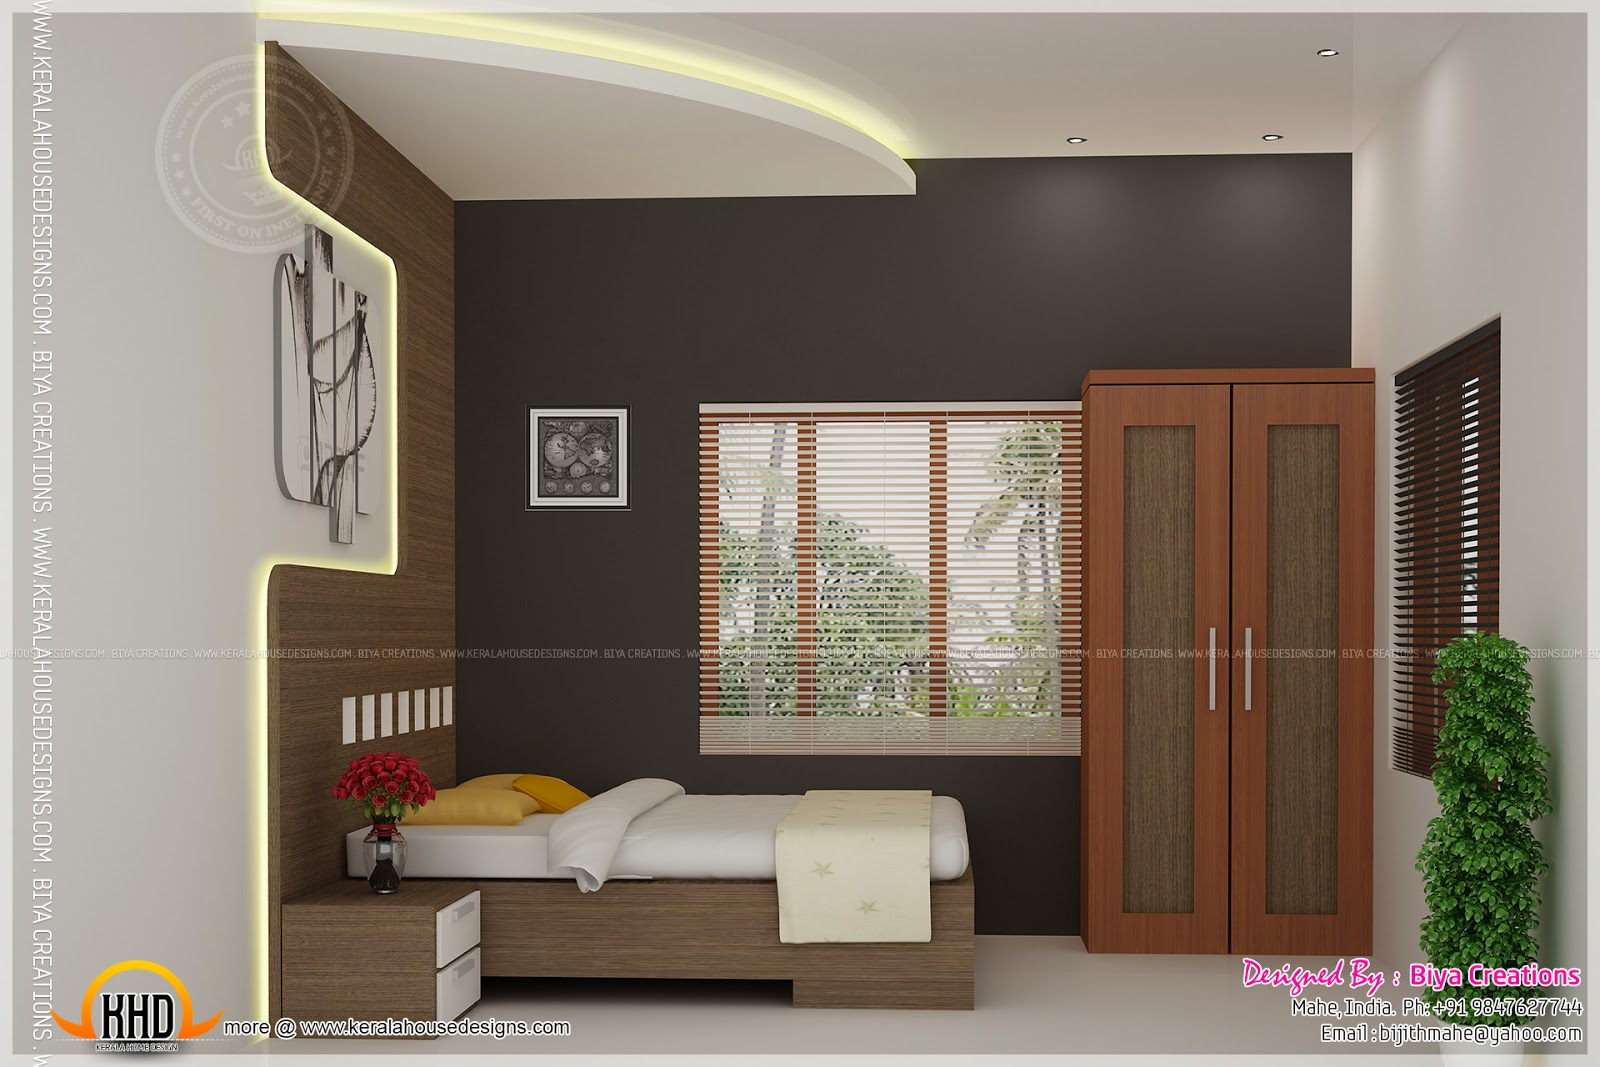 low budget bedroom interior design in india innovation